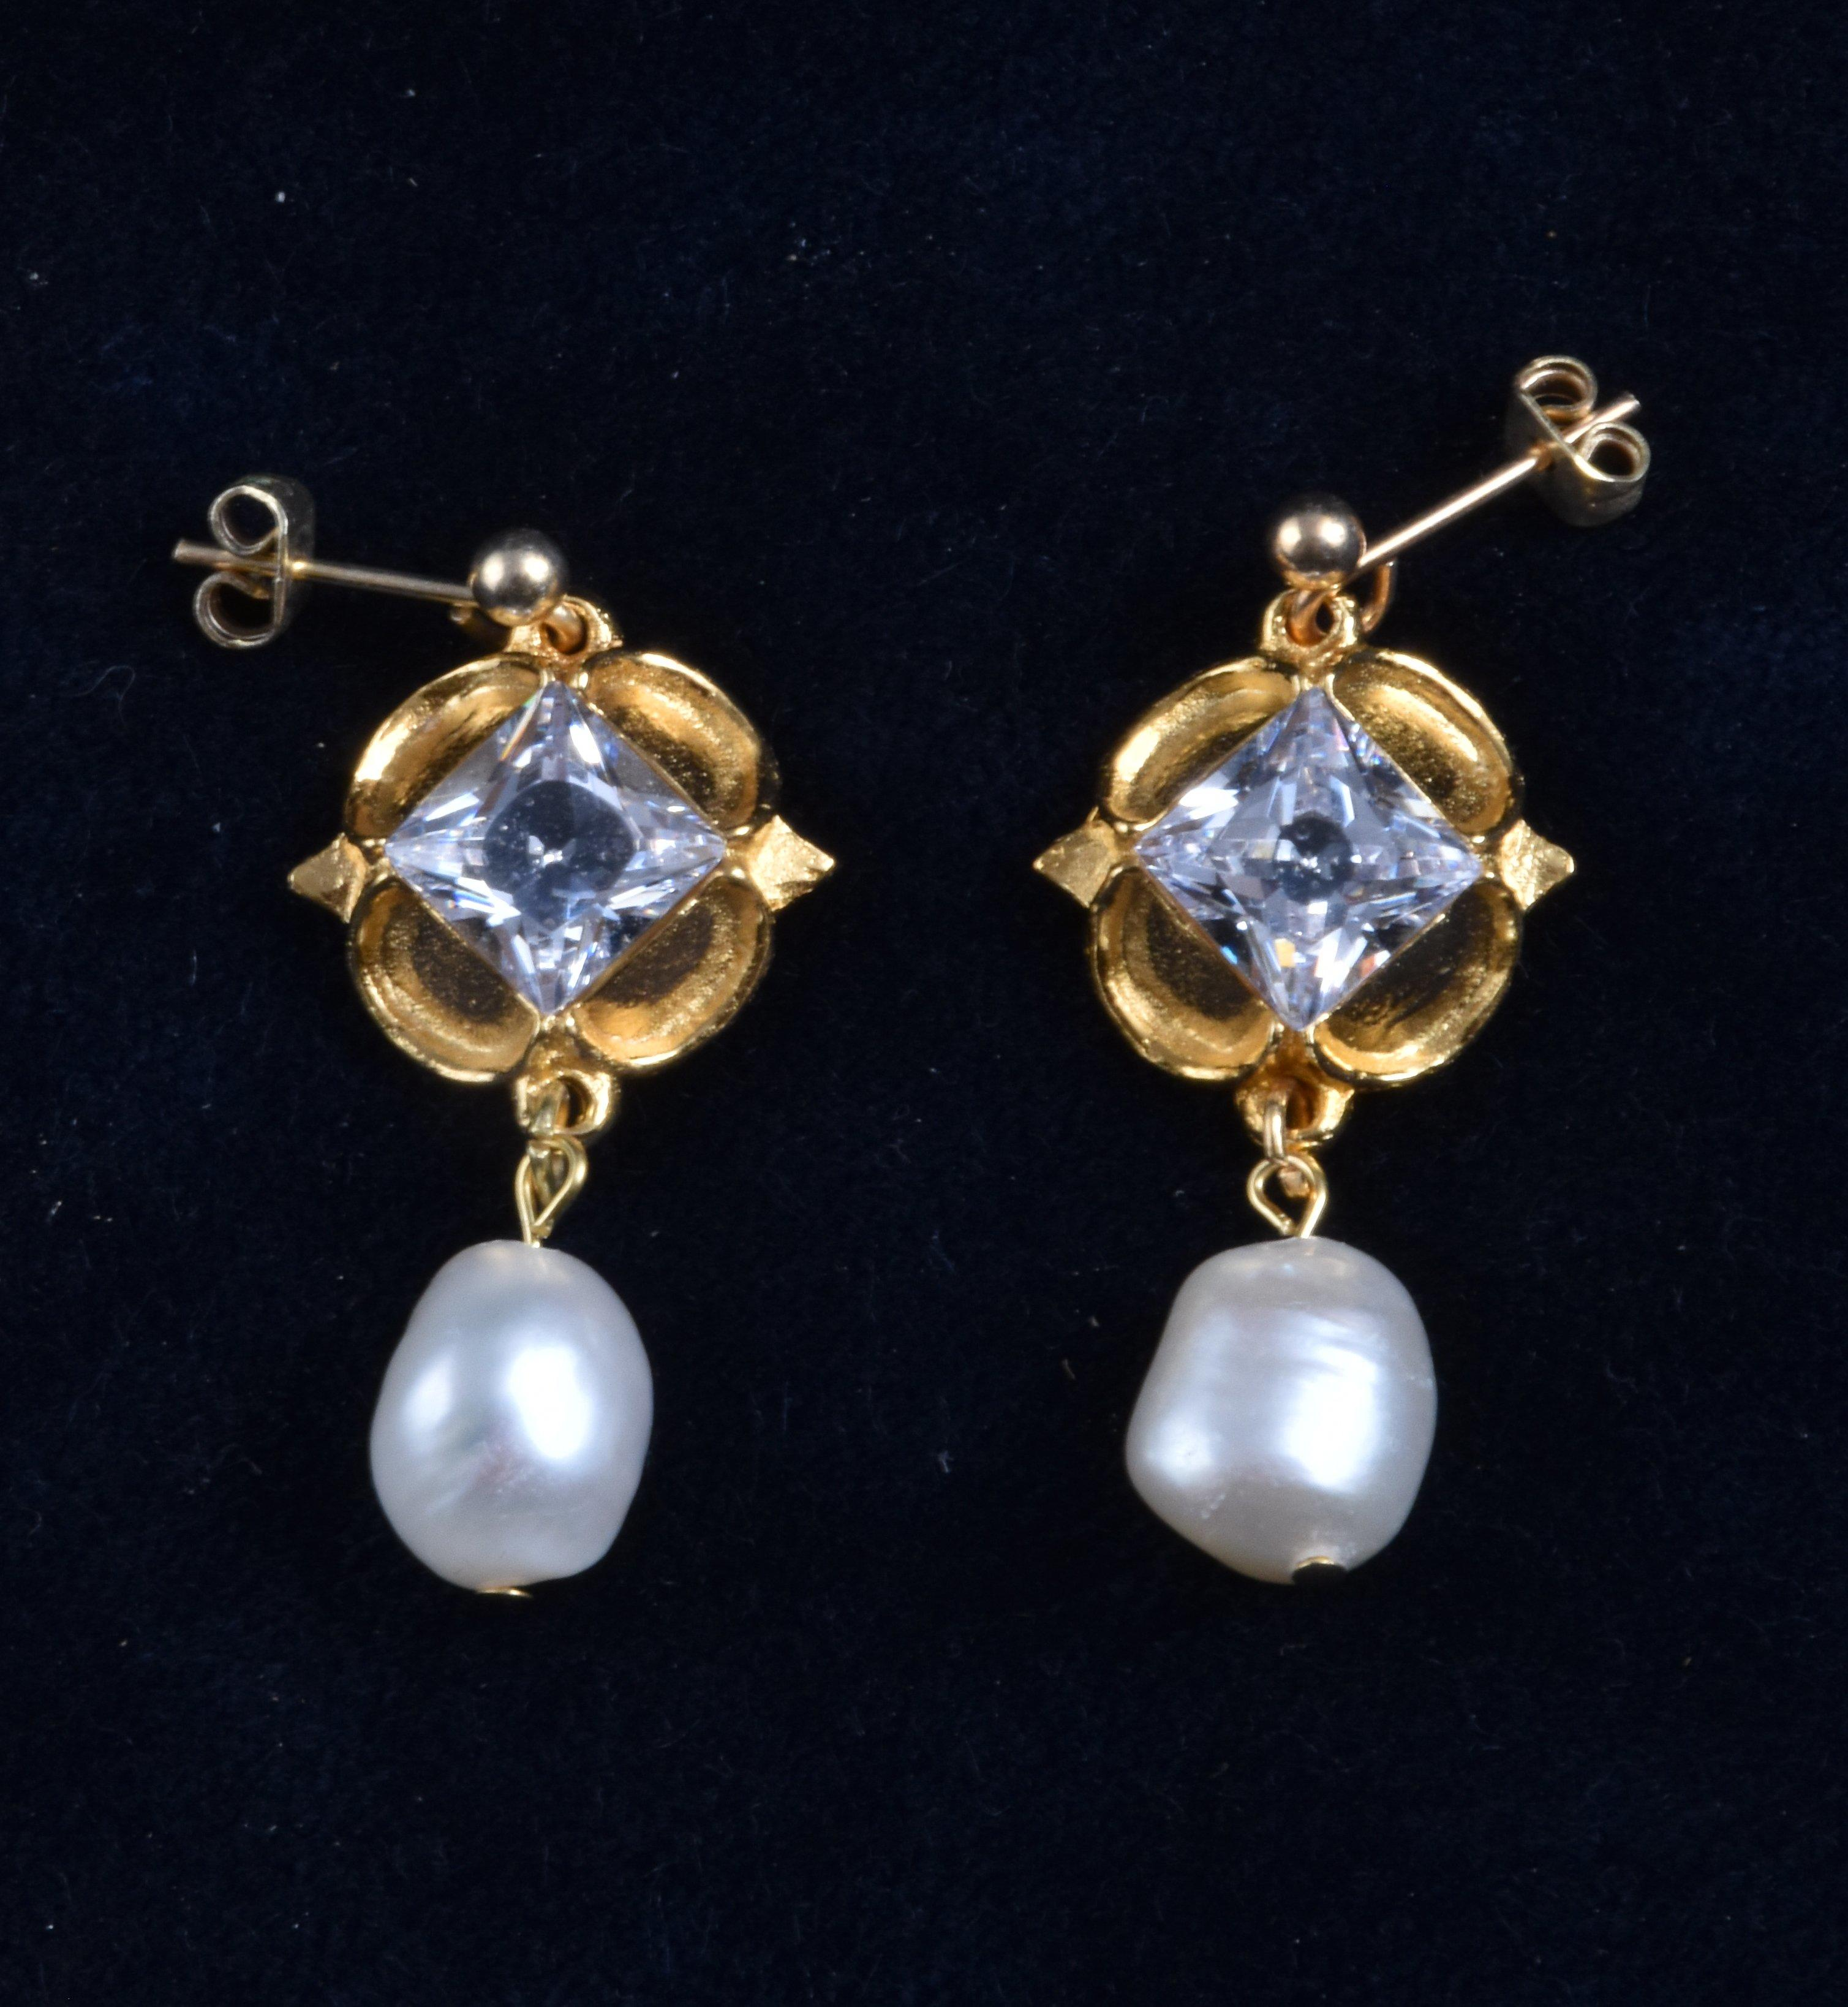 jane seymour earrings with diamonds